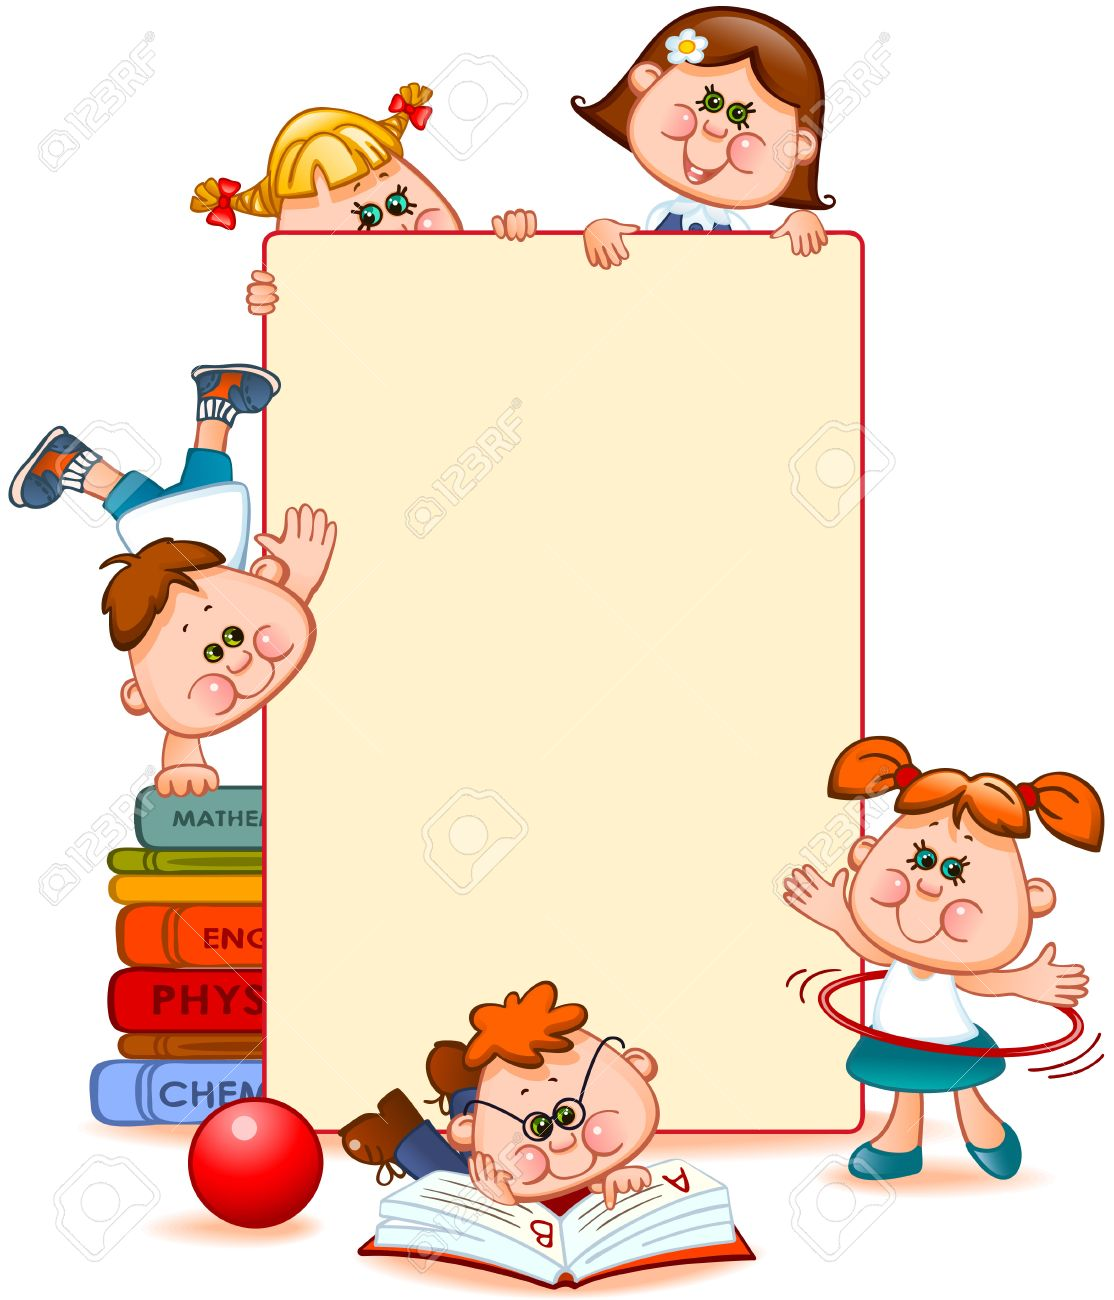 Frame with school children and school supplies. Space for text. Vector illustration - 47626769